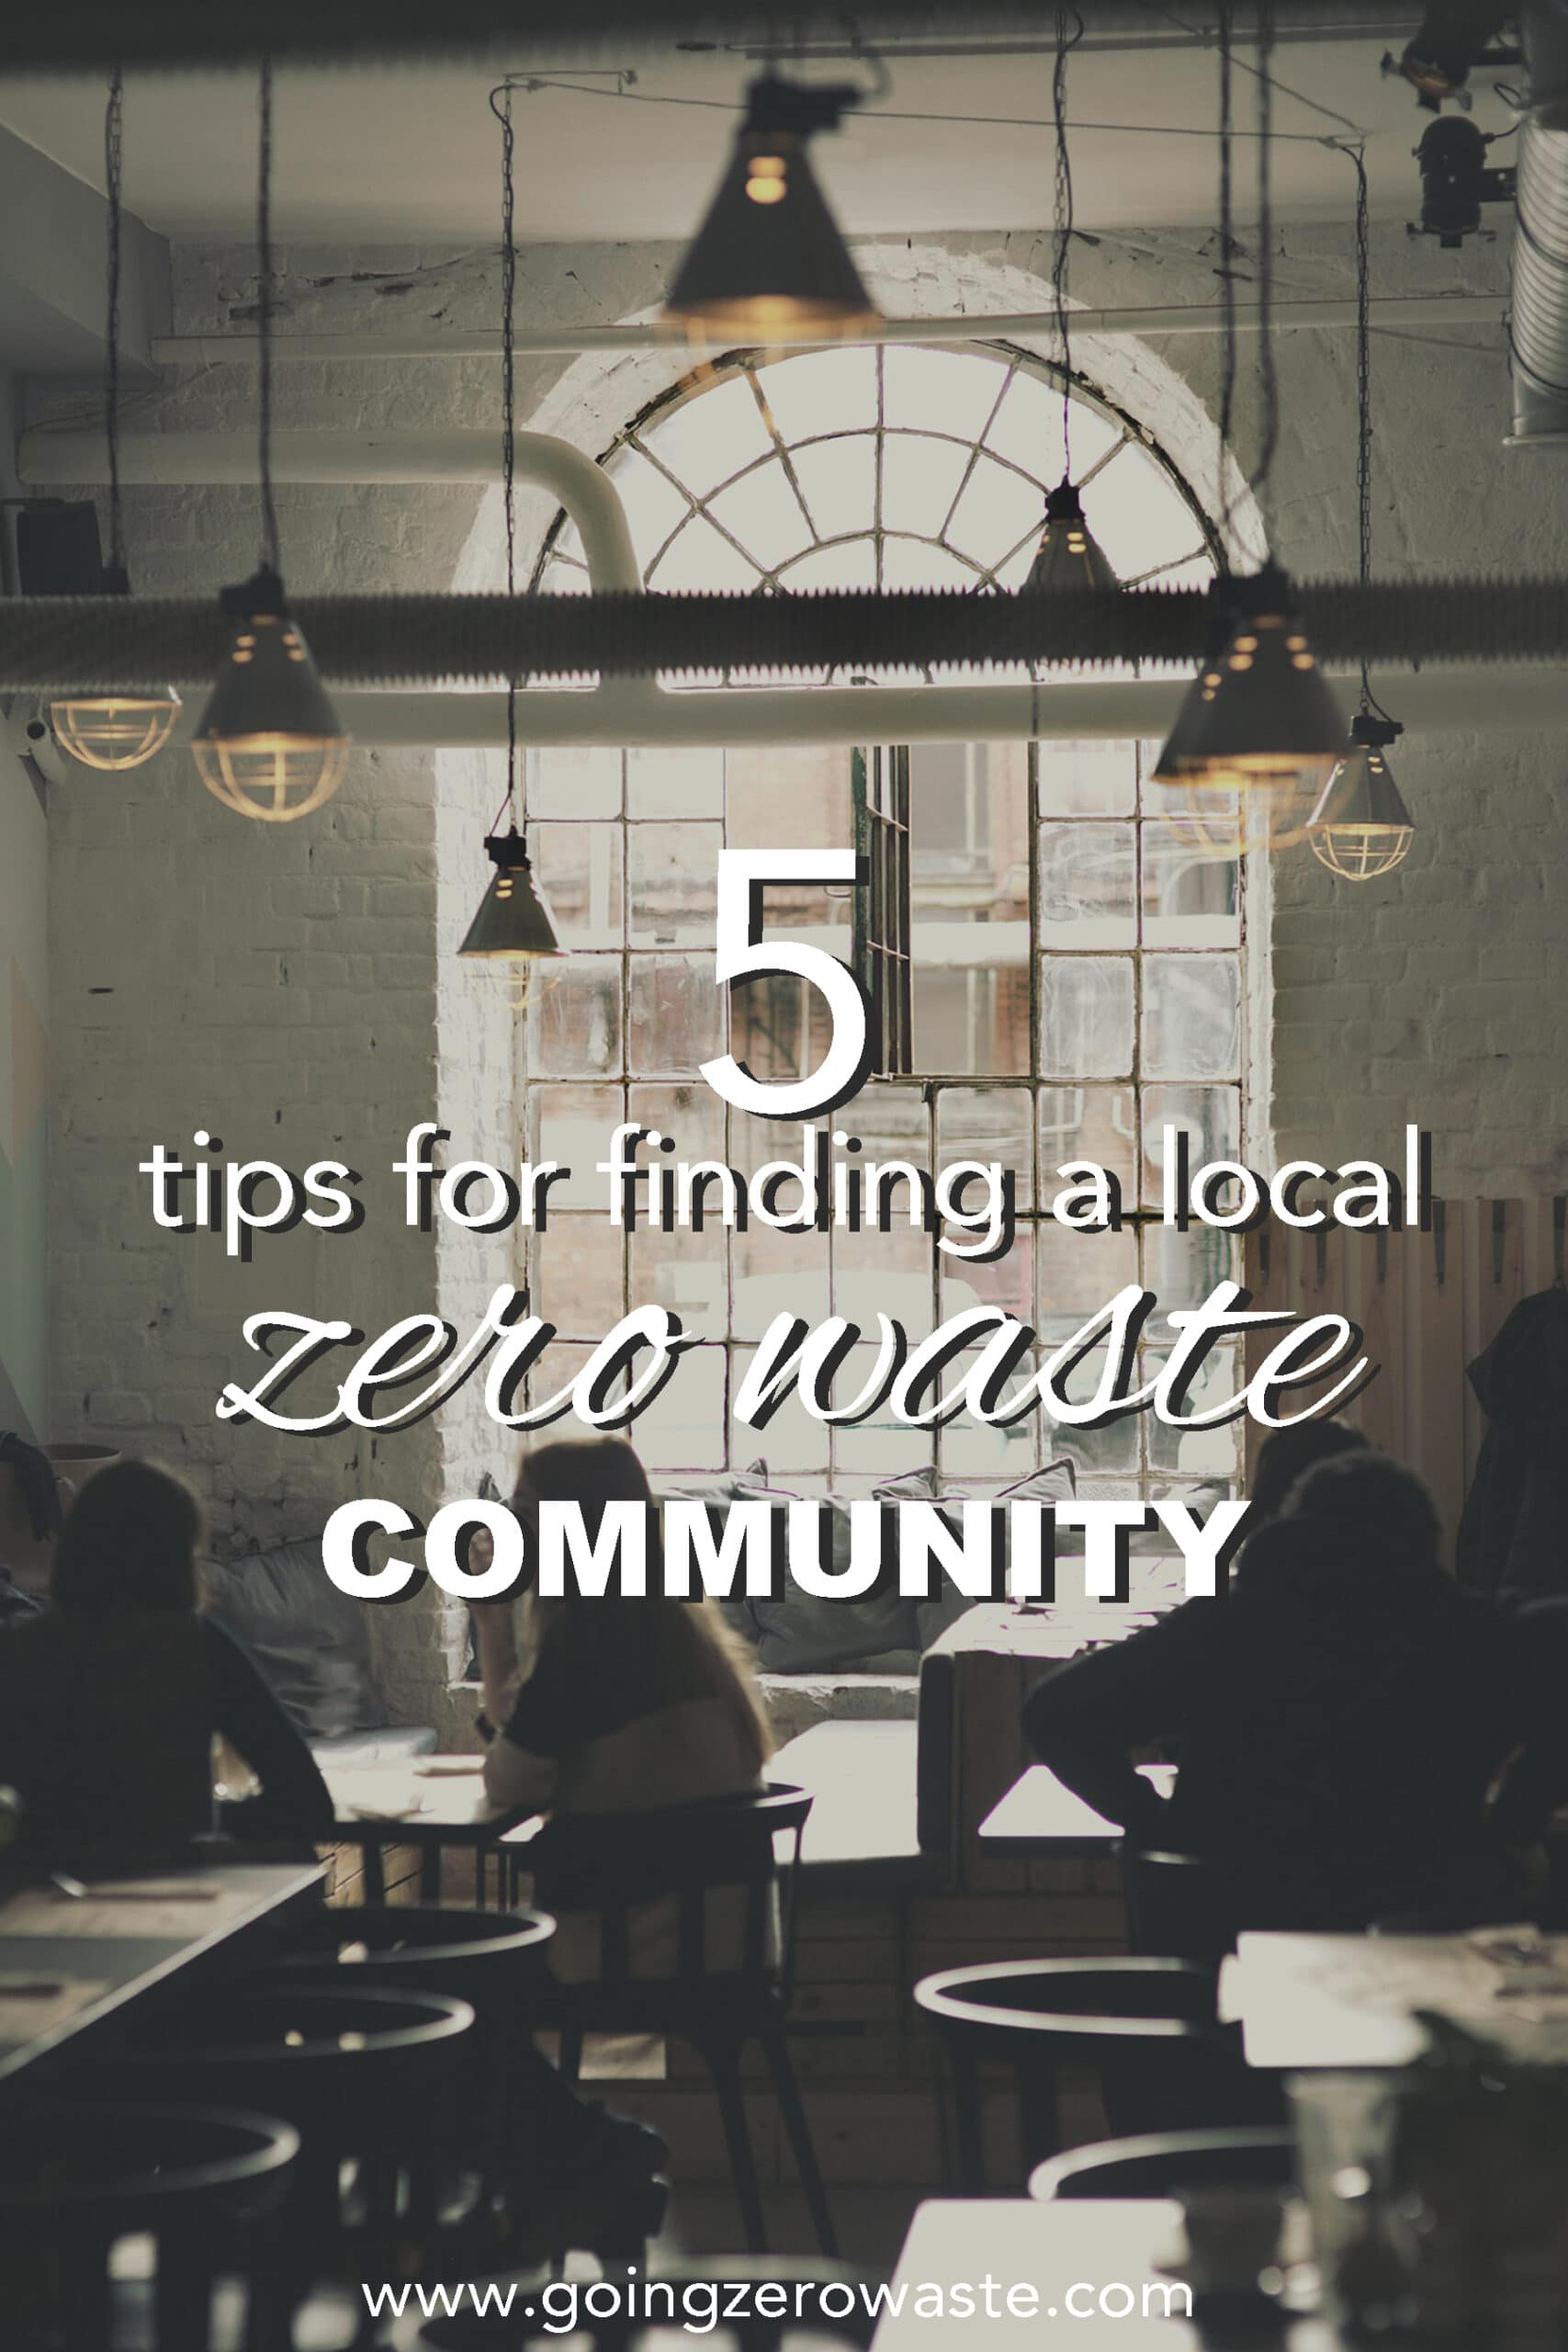 How to Find a Local Zero Waste Community